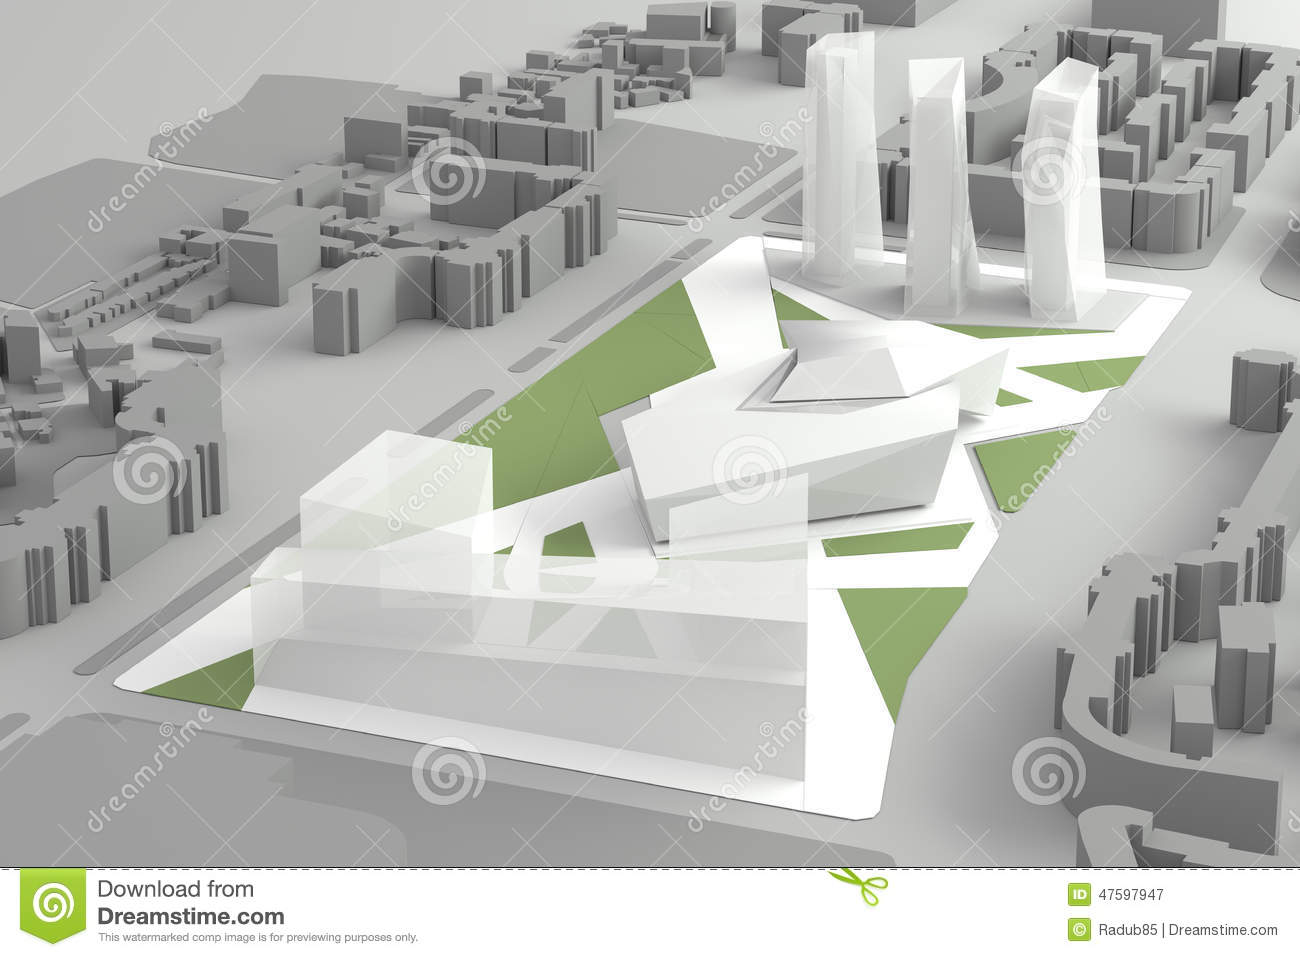 Picture Book Illustration Making An Architectural Model: Architectural Model Of Downtown Financial City Center